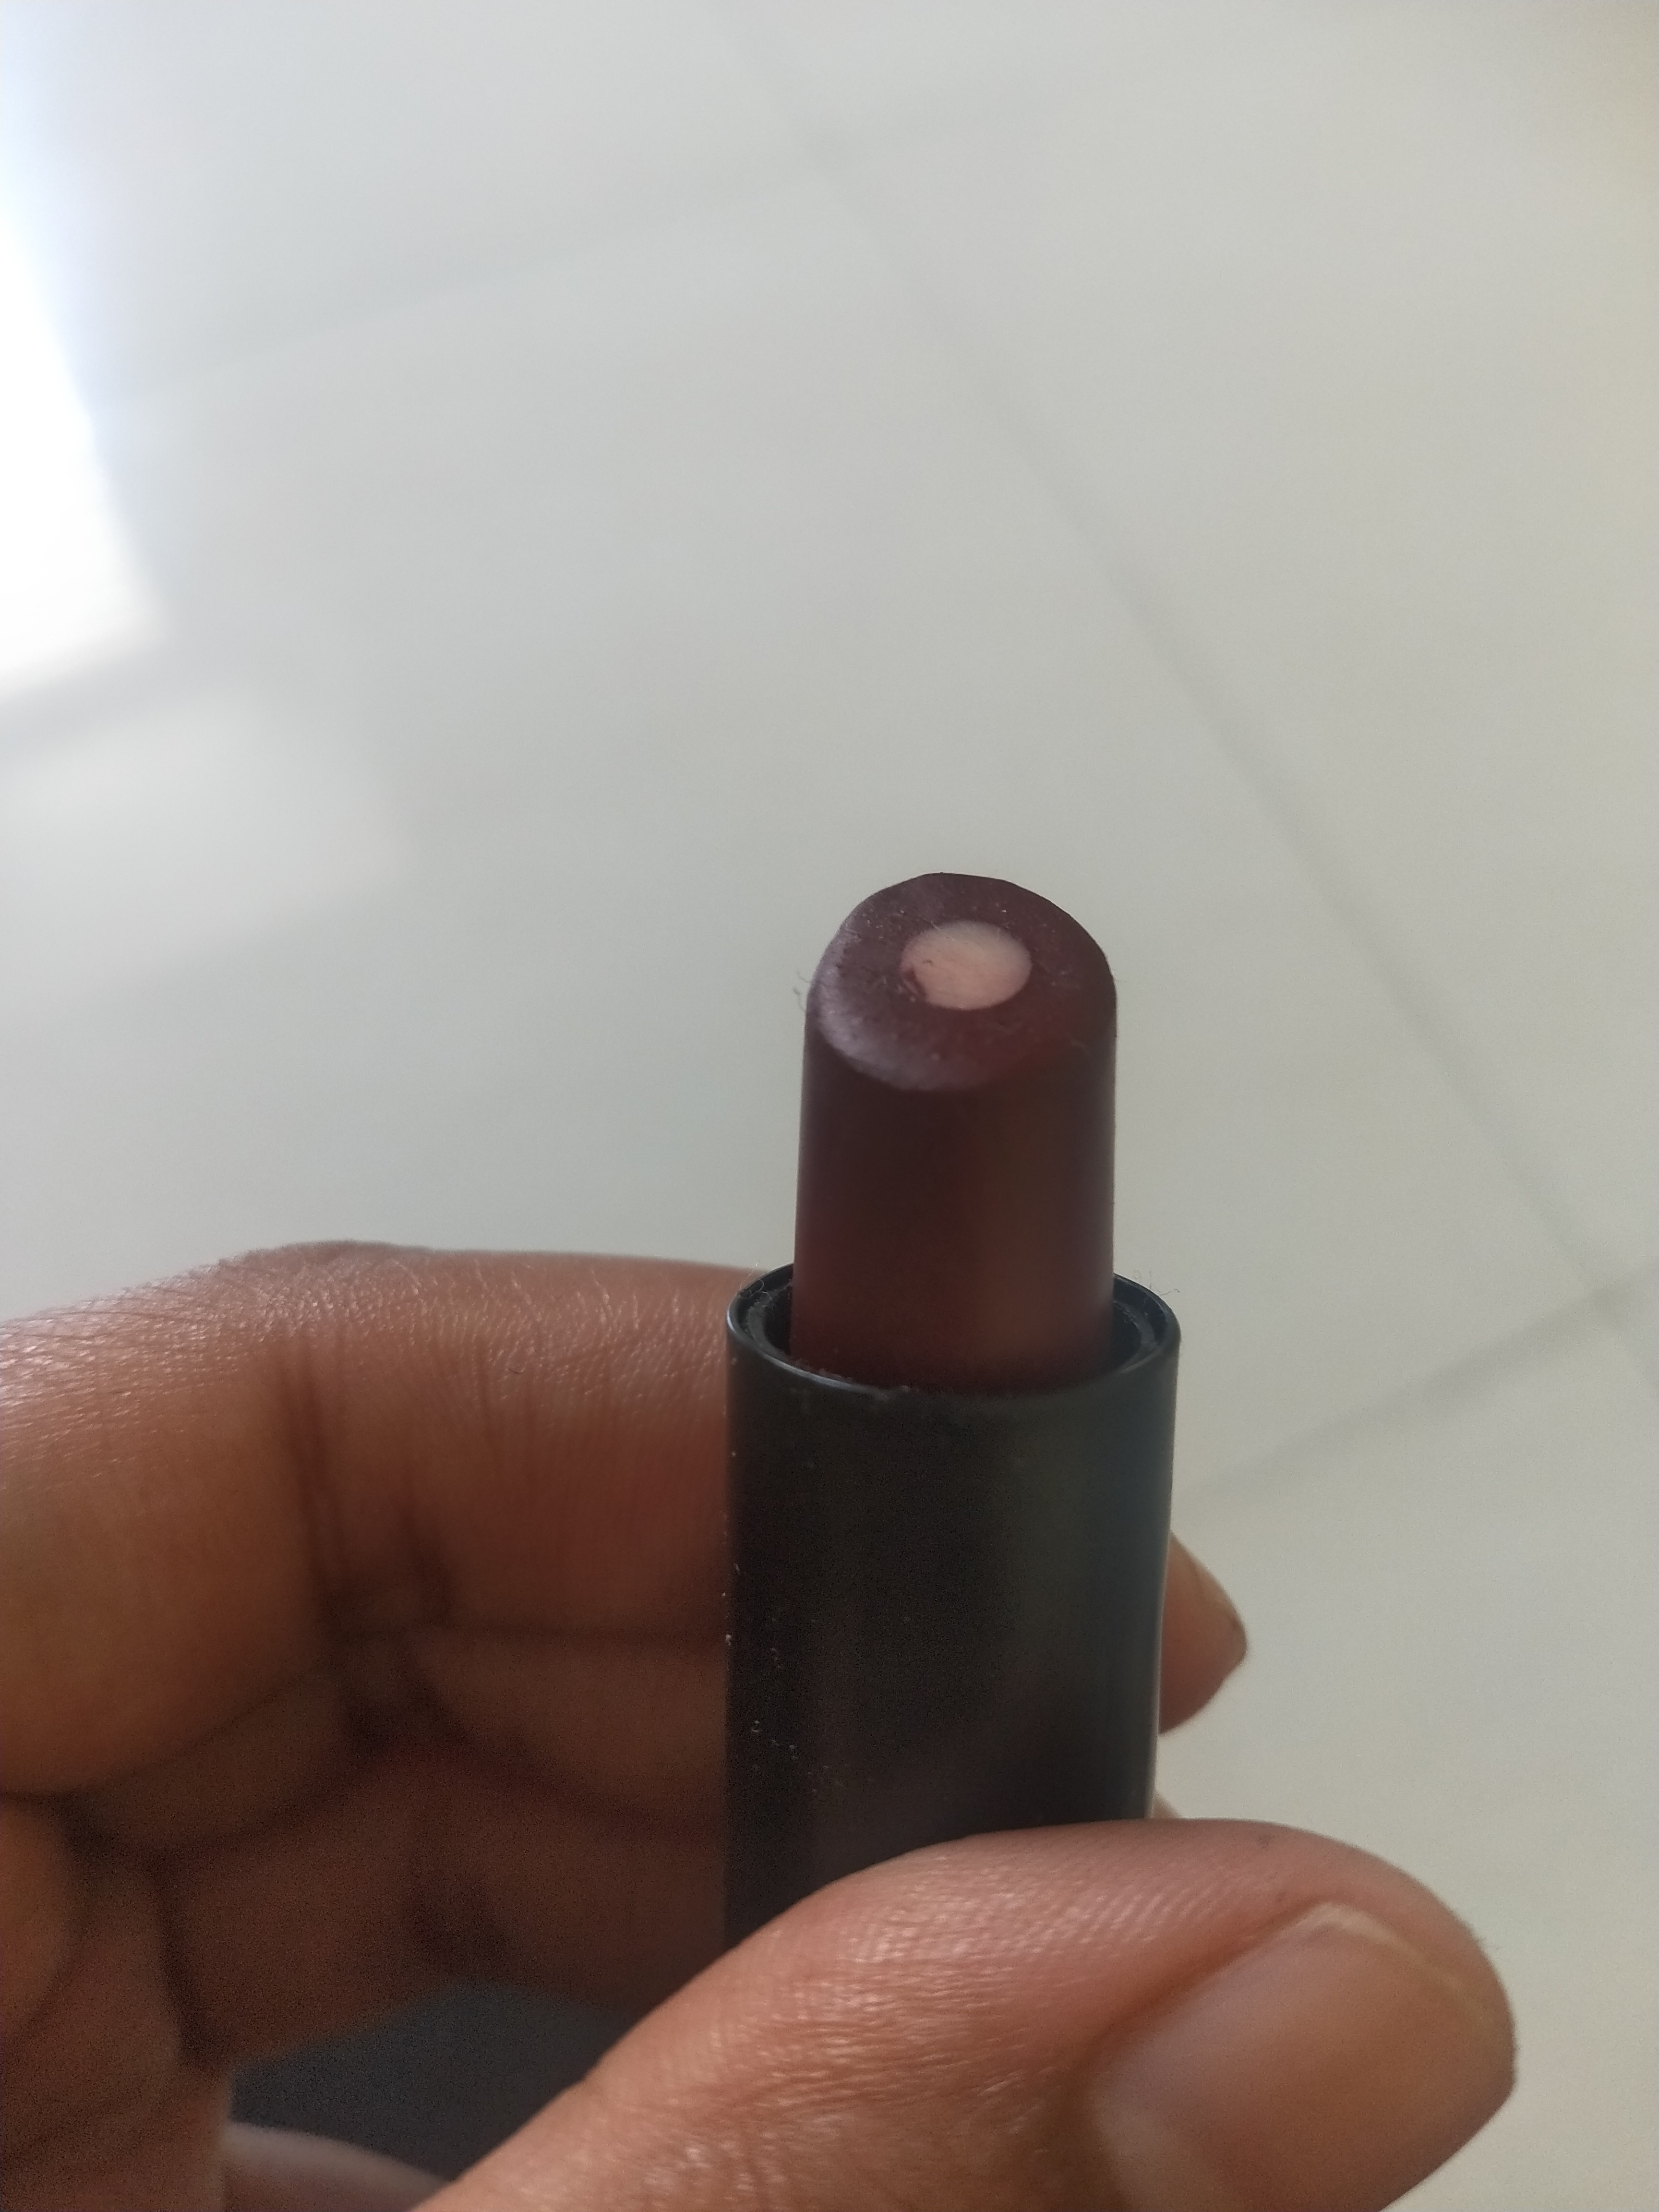 Elle 18 Color Burst Lipstick pic 1-Beautiful shades, affordable lipstick-By miss_hungry_soul